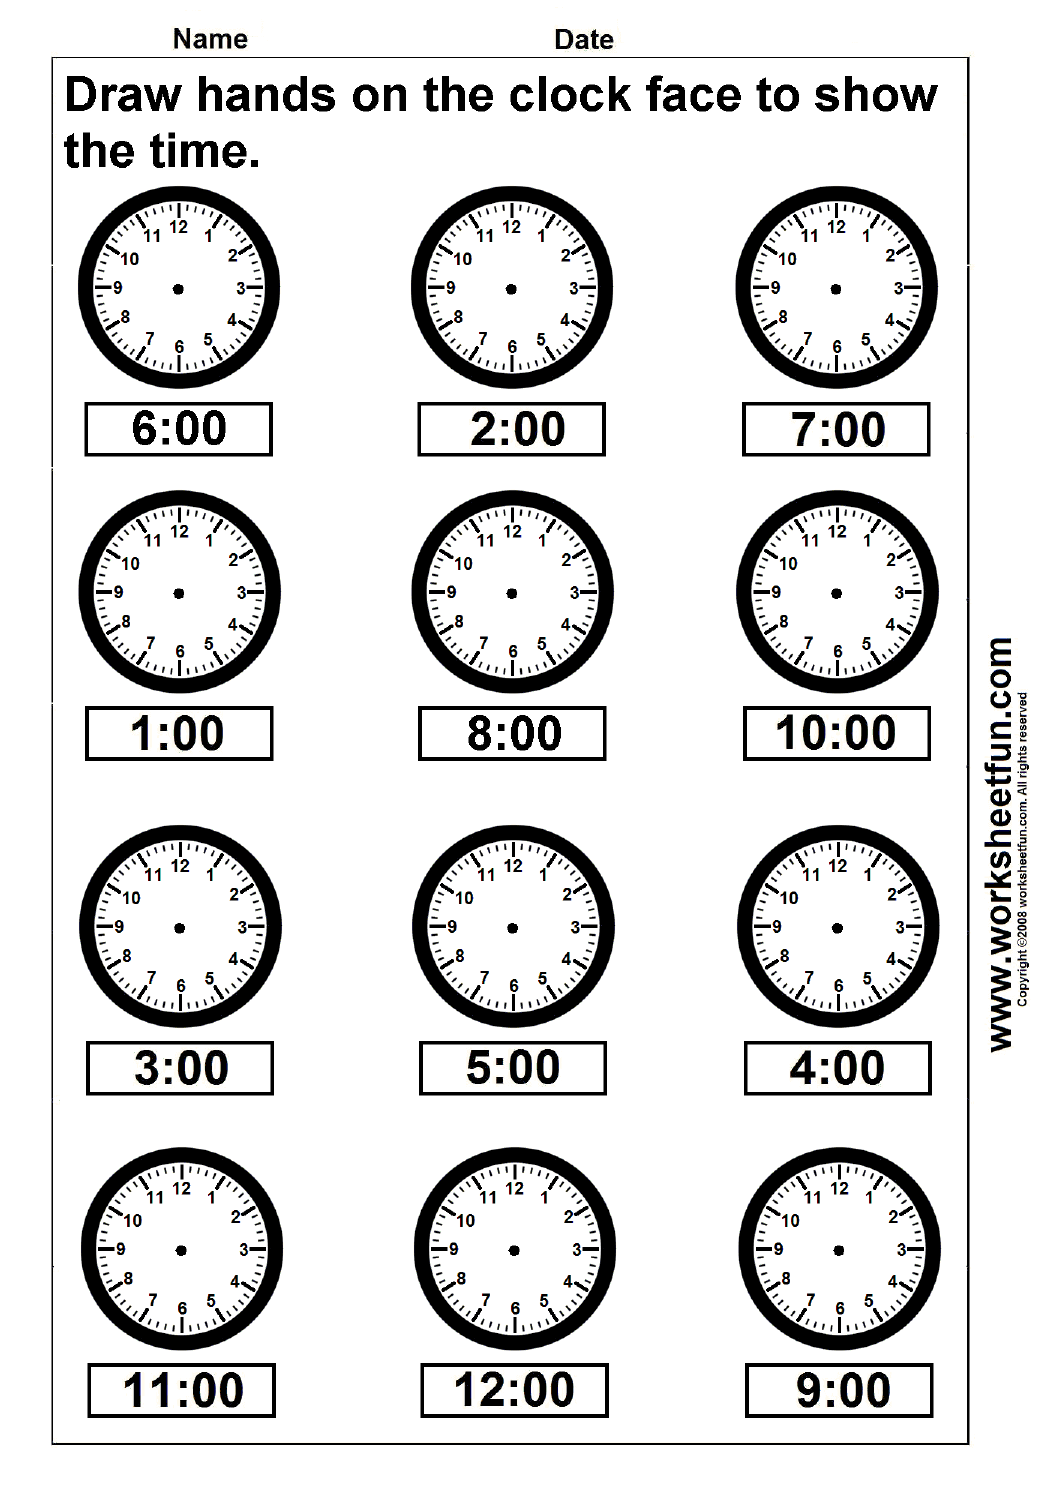 worksheet Face Math Worksheets draw hands on the clock face to show time 4 worksheets worksheet 1 face